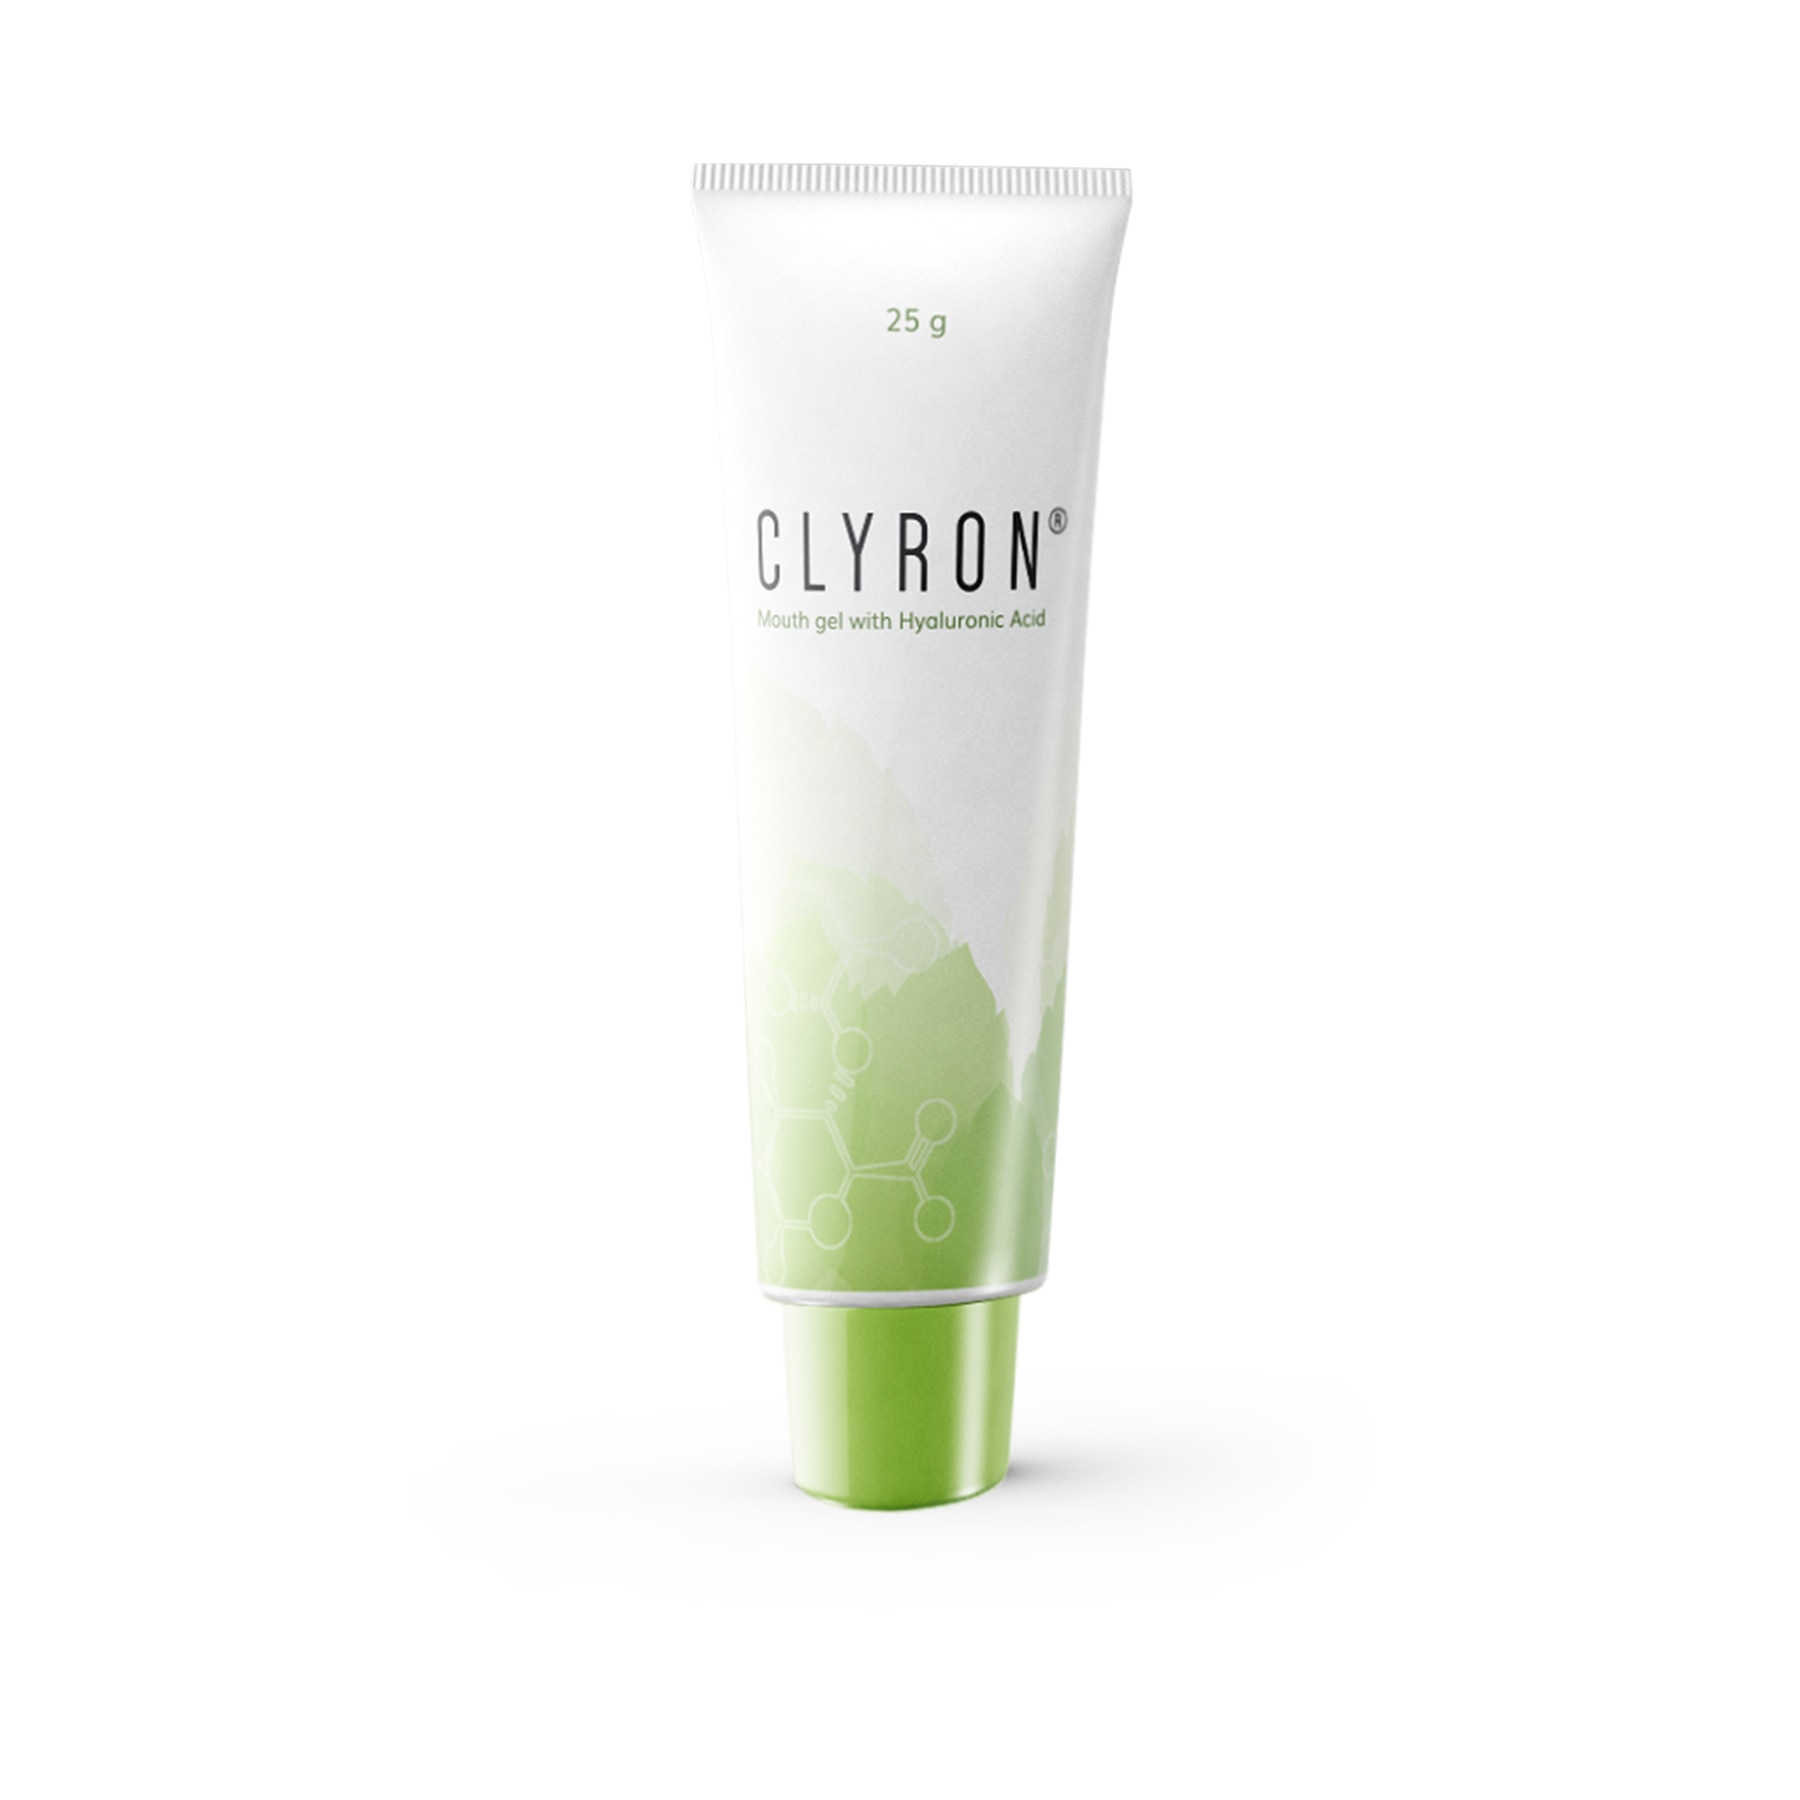 CLYRONClyron Mouth Gel with Hyaluronic Acid 25g,Mouthwash and Oral AntisepticsWCFREEDELIVER